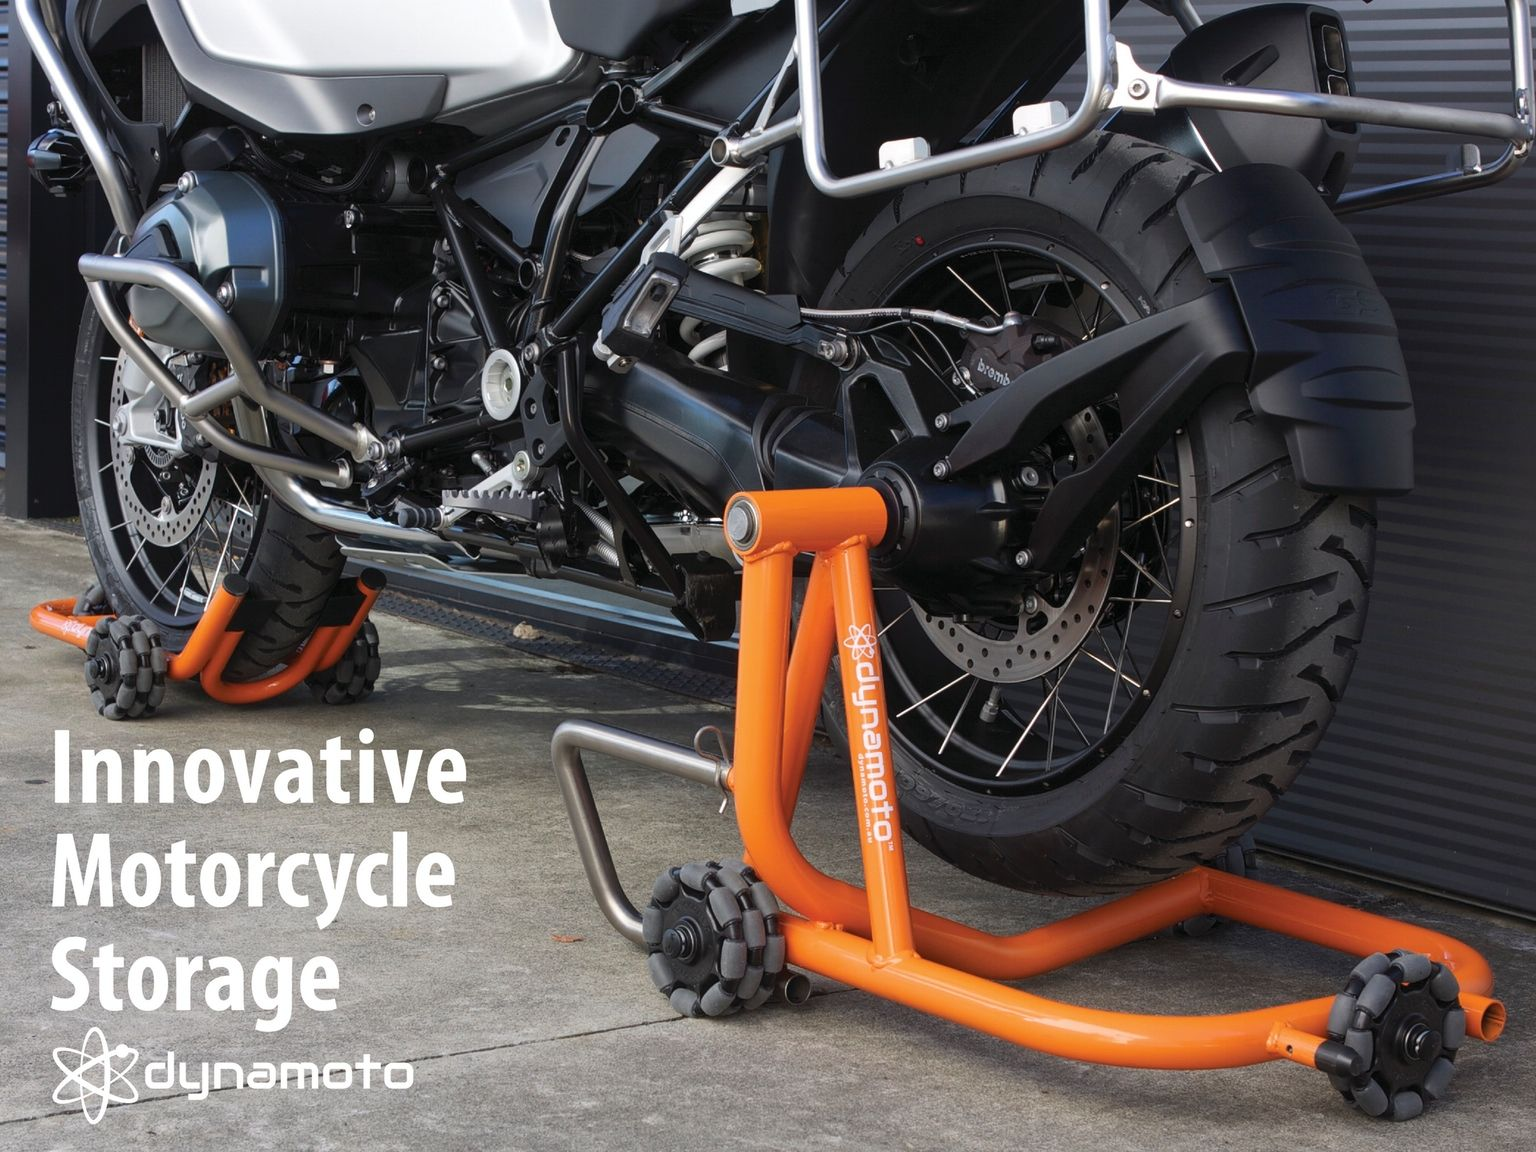 Simple, robust, and versatile devices for motorcycle riders to park, move, store and retrieve their bikes.